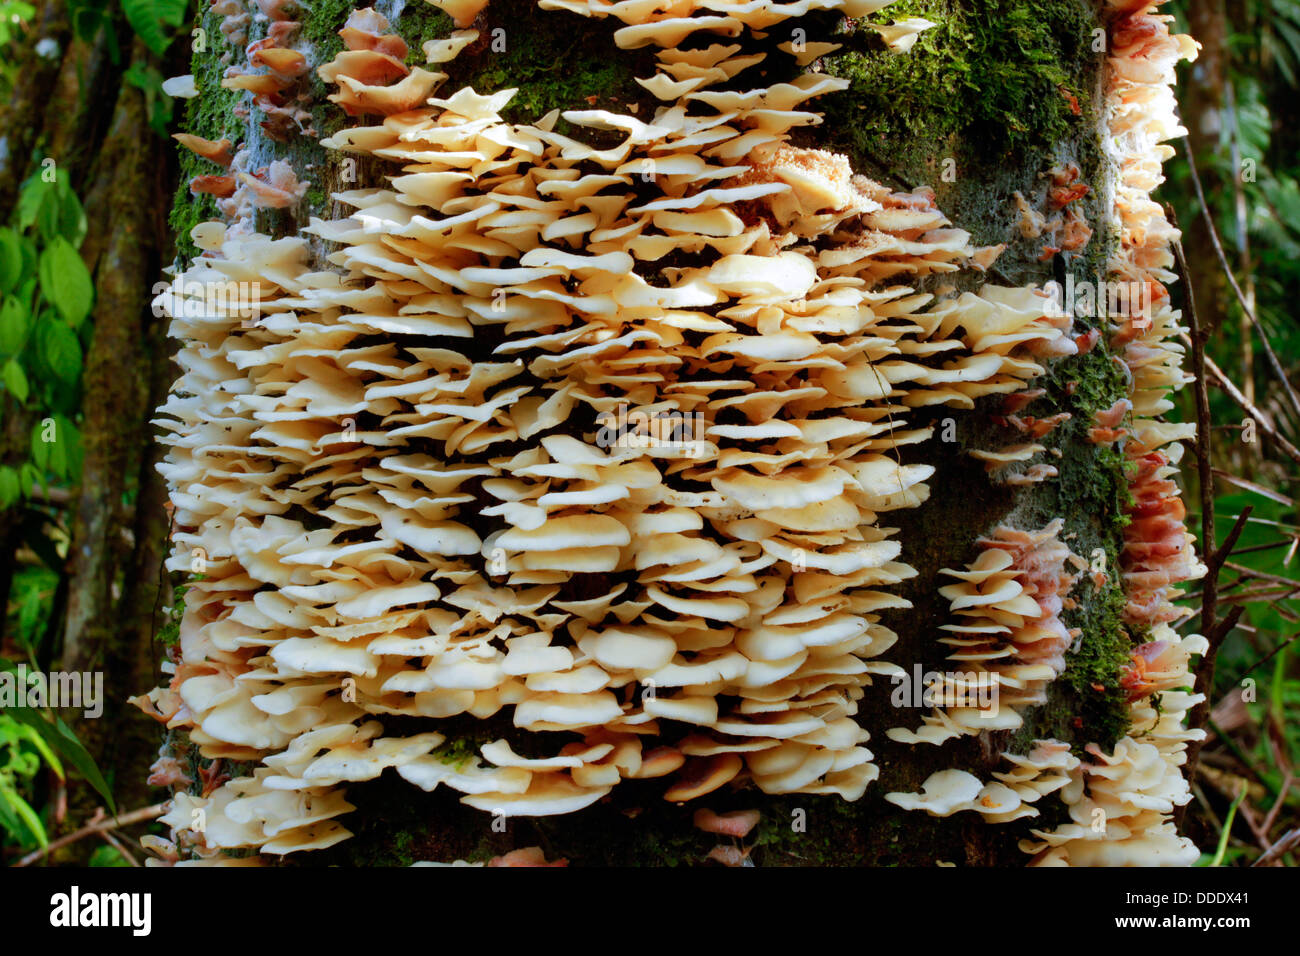 Bracket fungus growing on a dead tree in rainforest, Ecuador - Stock Image